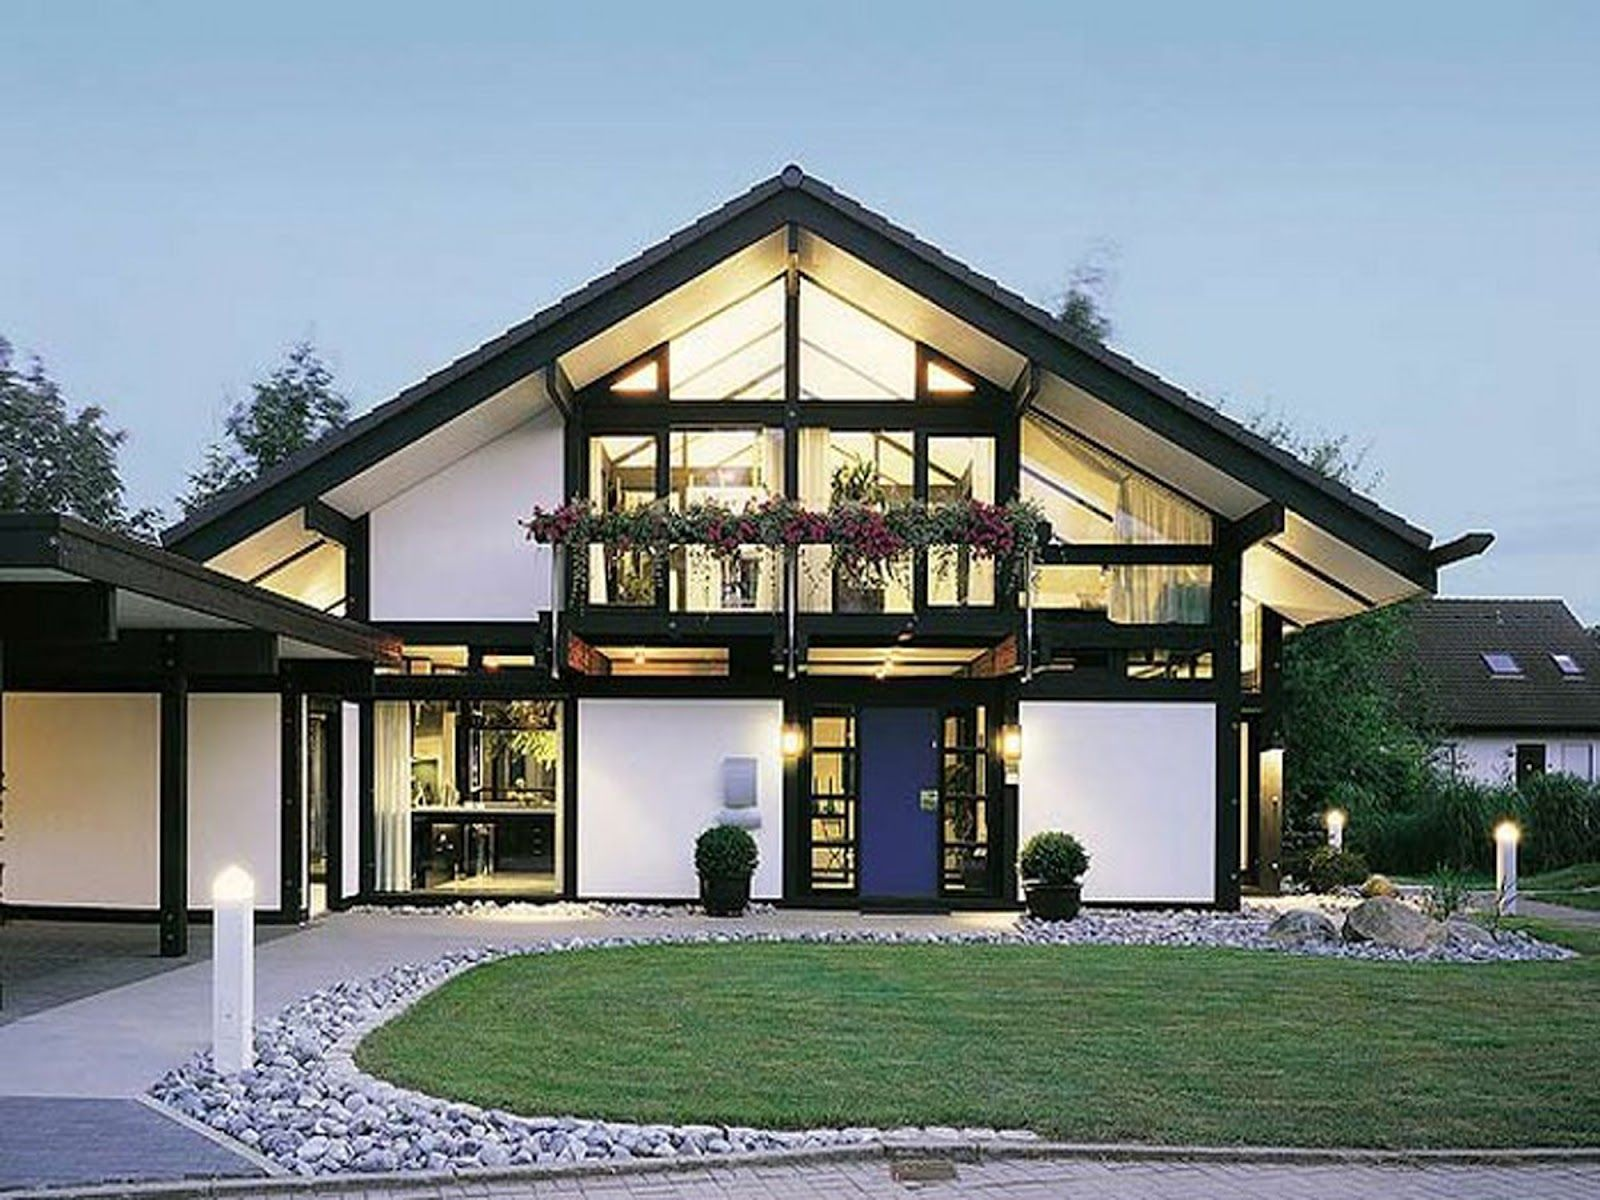 New home designs latest beautiful modern cool house also how to design  simple with adorable style ideas in rh pinterest